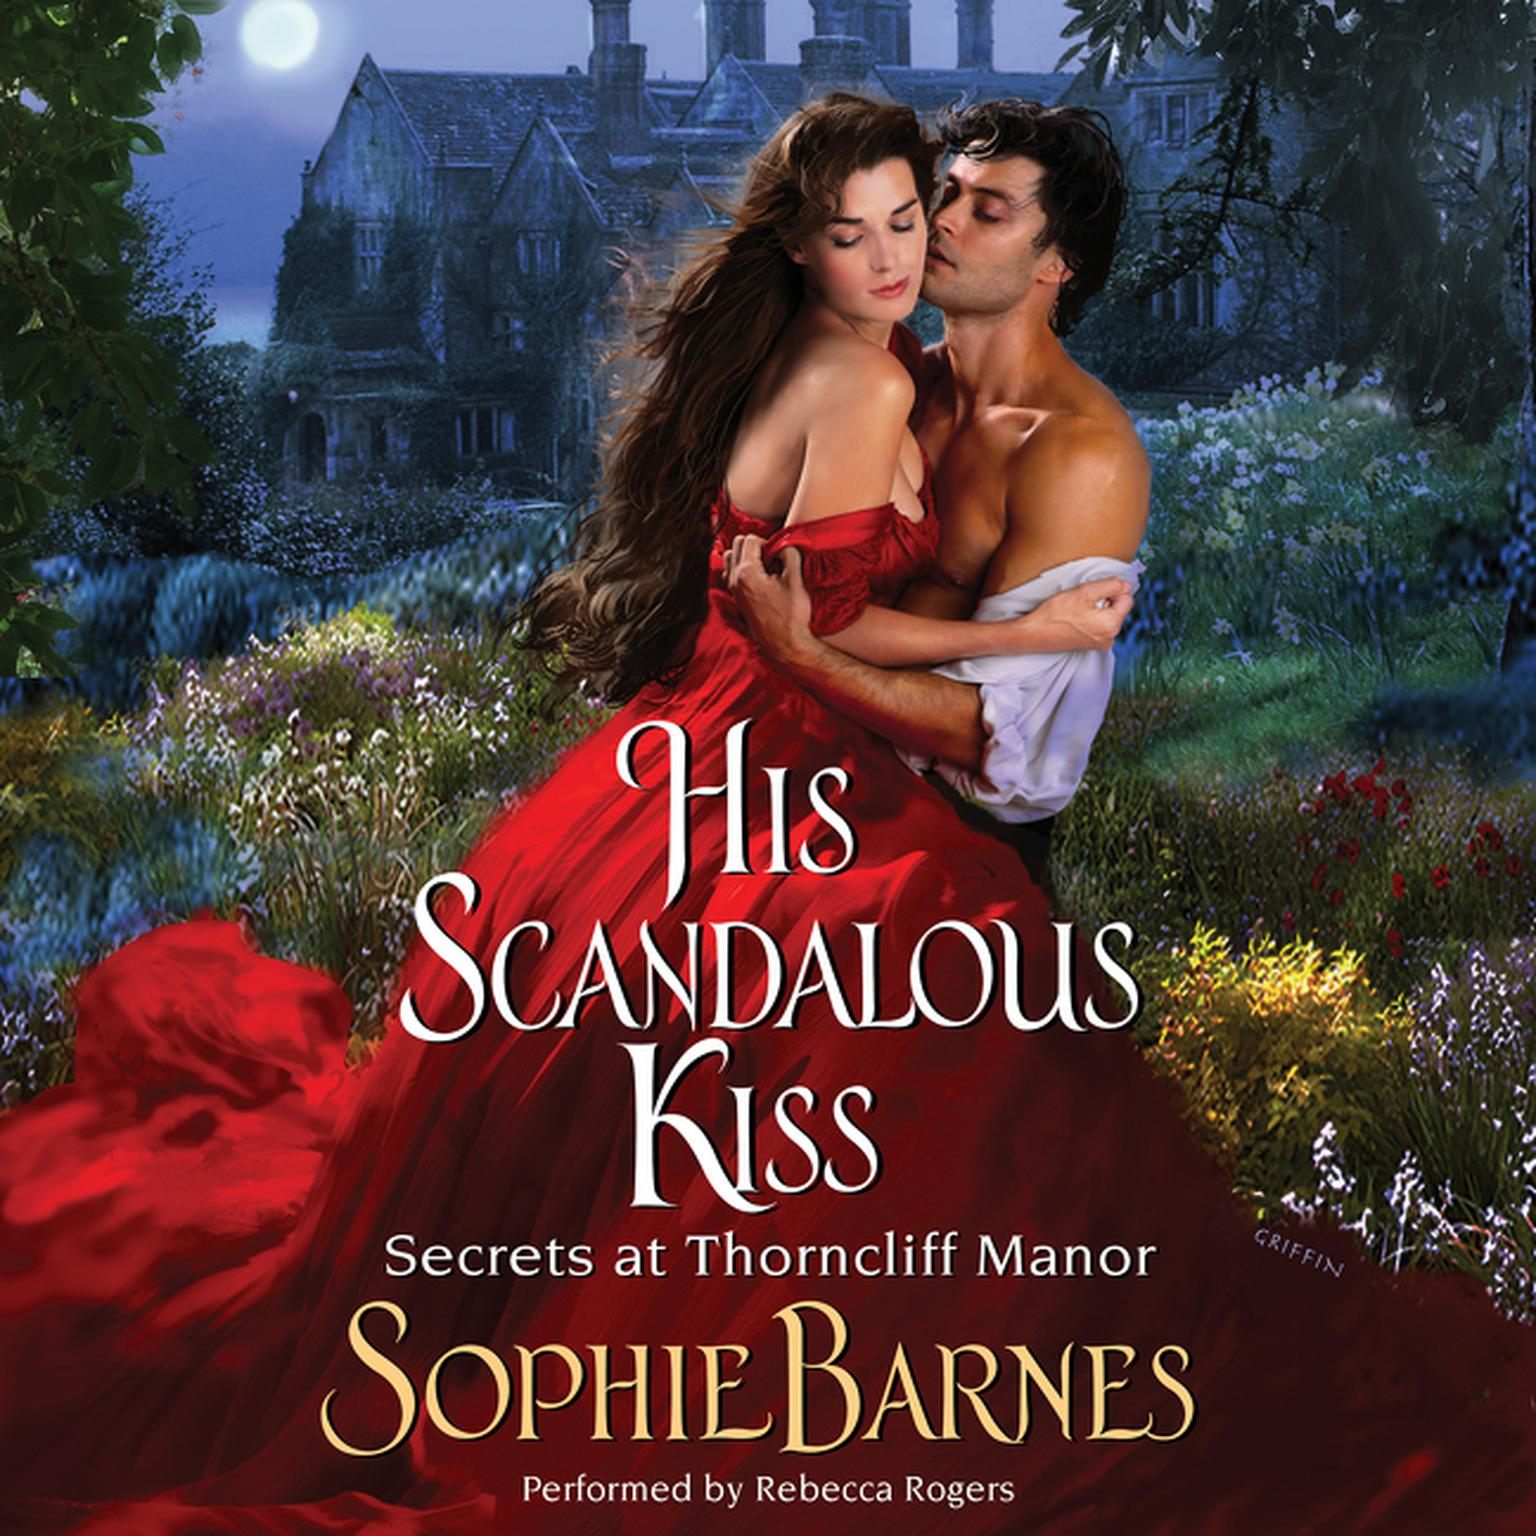 Printable His Scandalous Kiss: Secrets at Thorncliff Manor Audiobook Cover Art